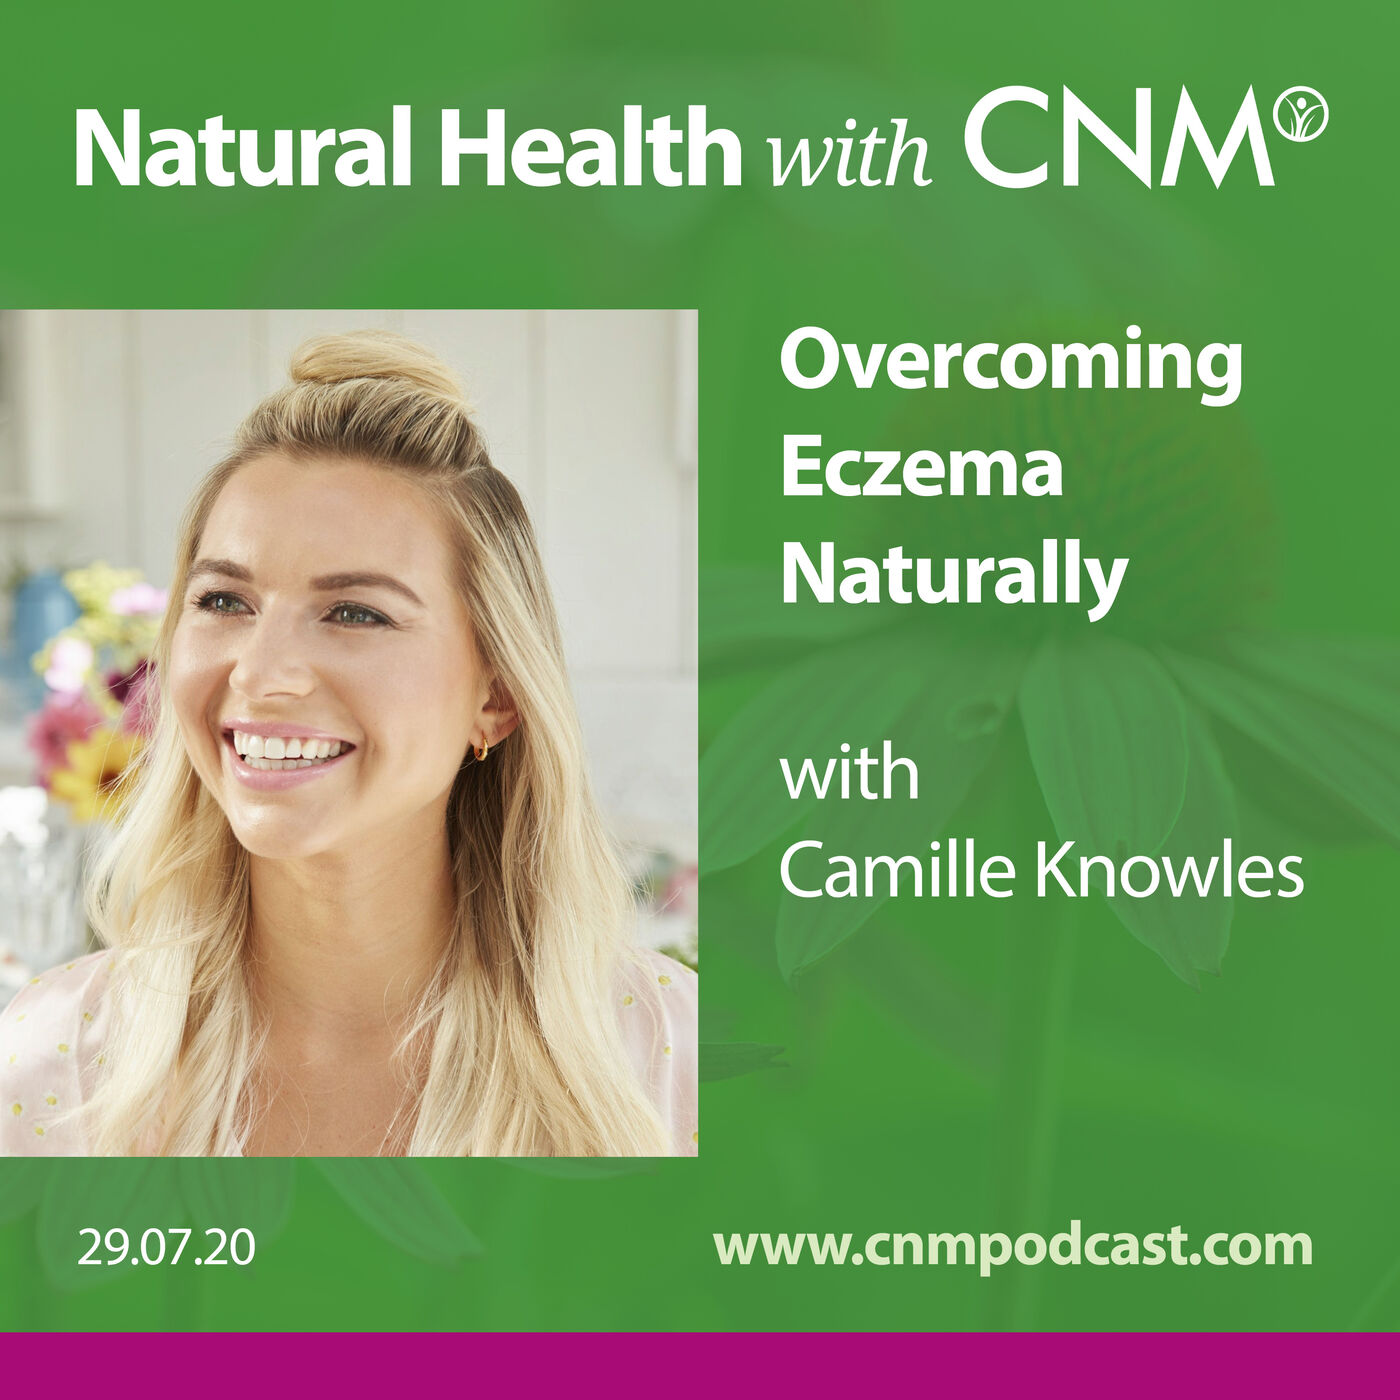 Overcoming Eczema Naturally with Camille Knowles